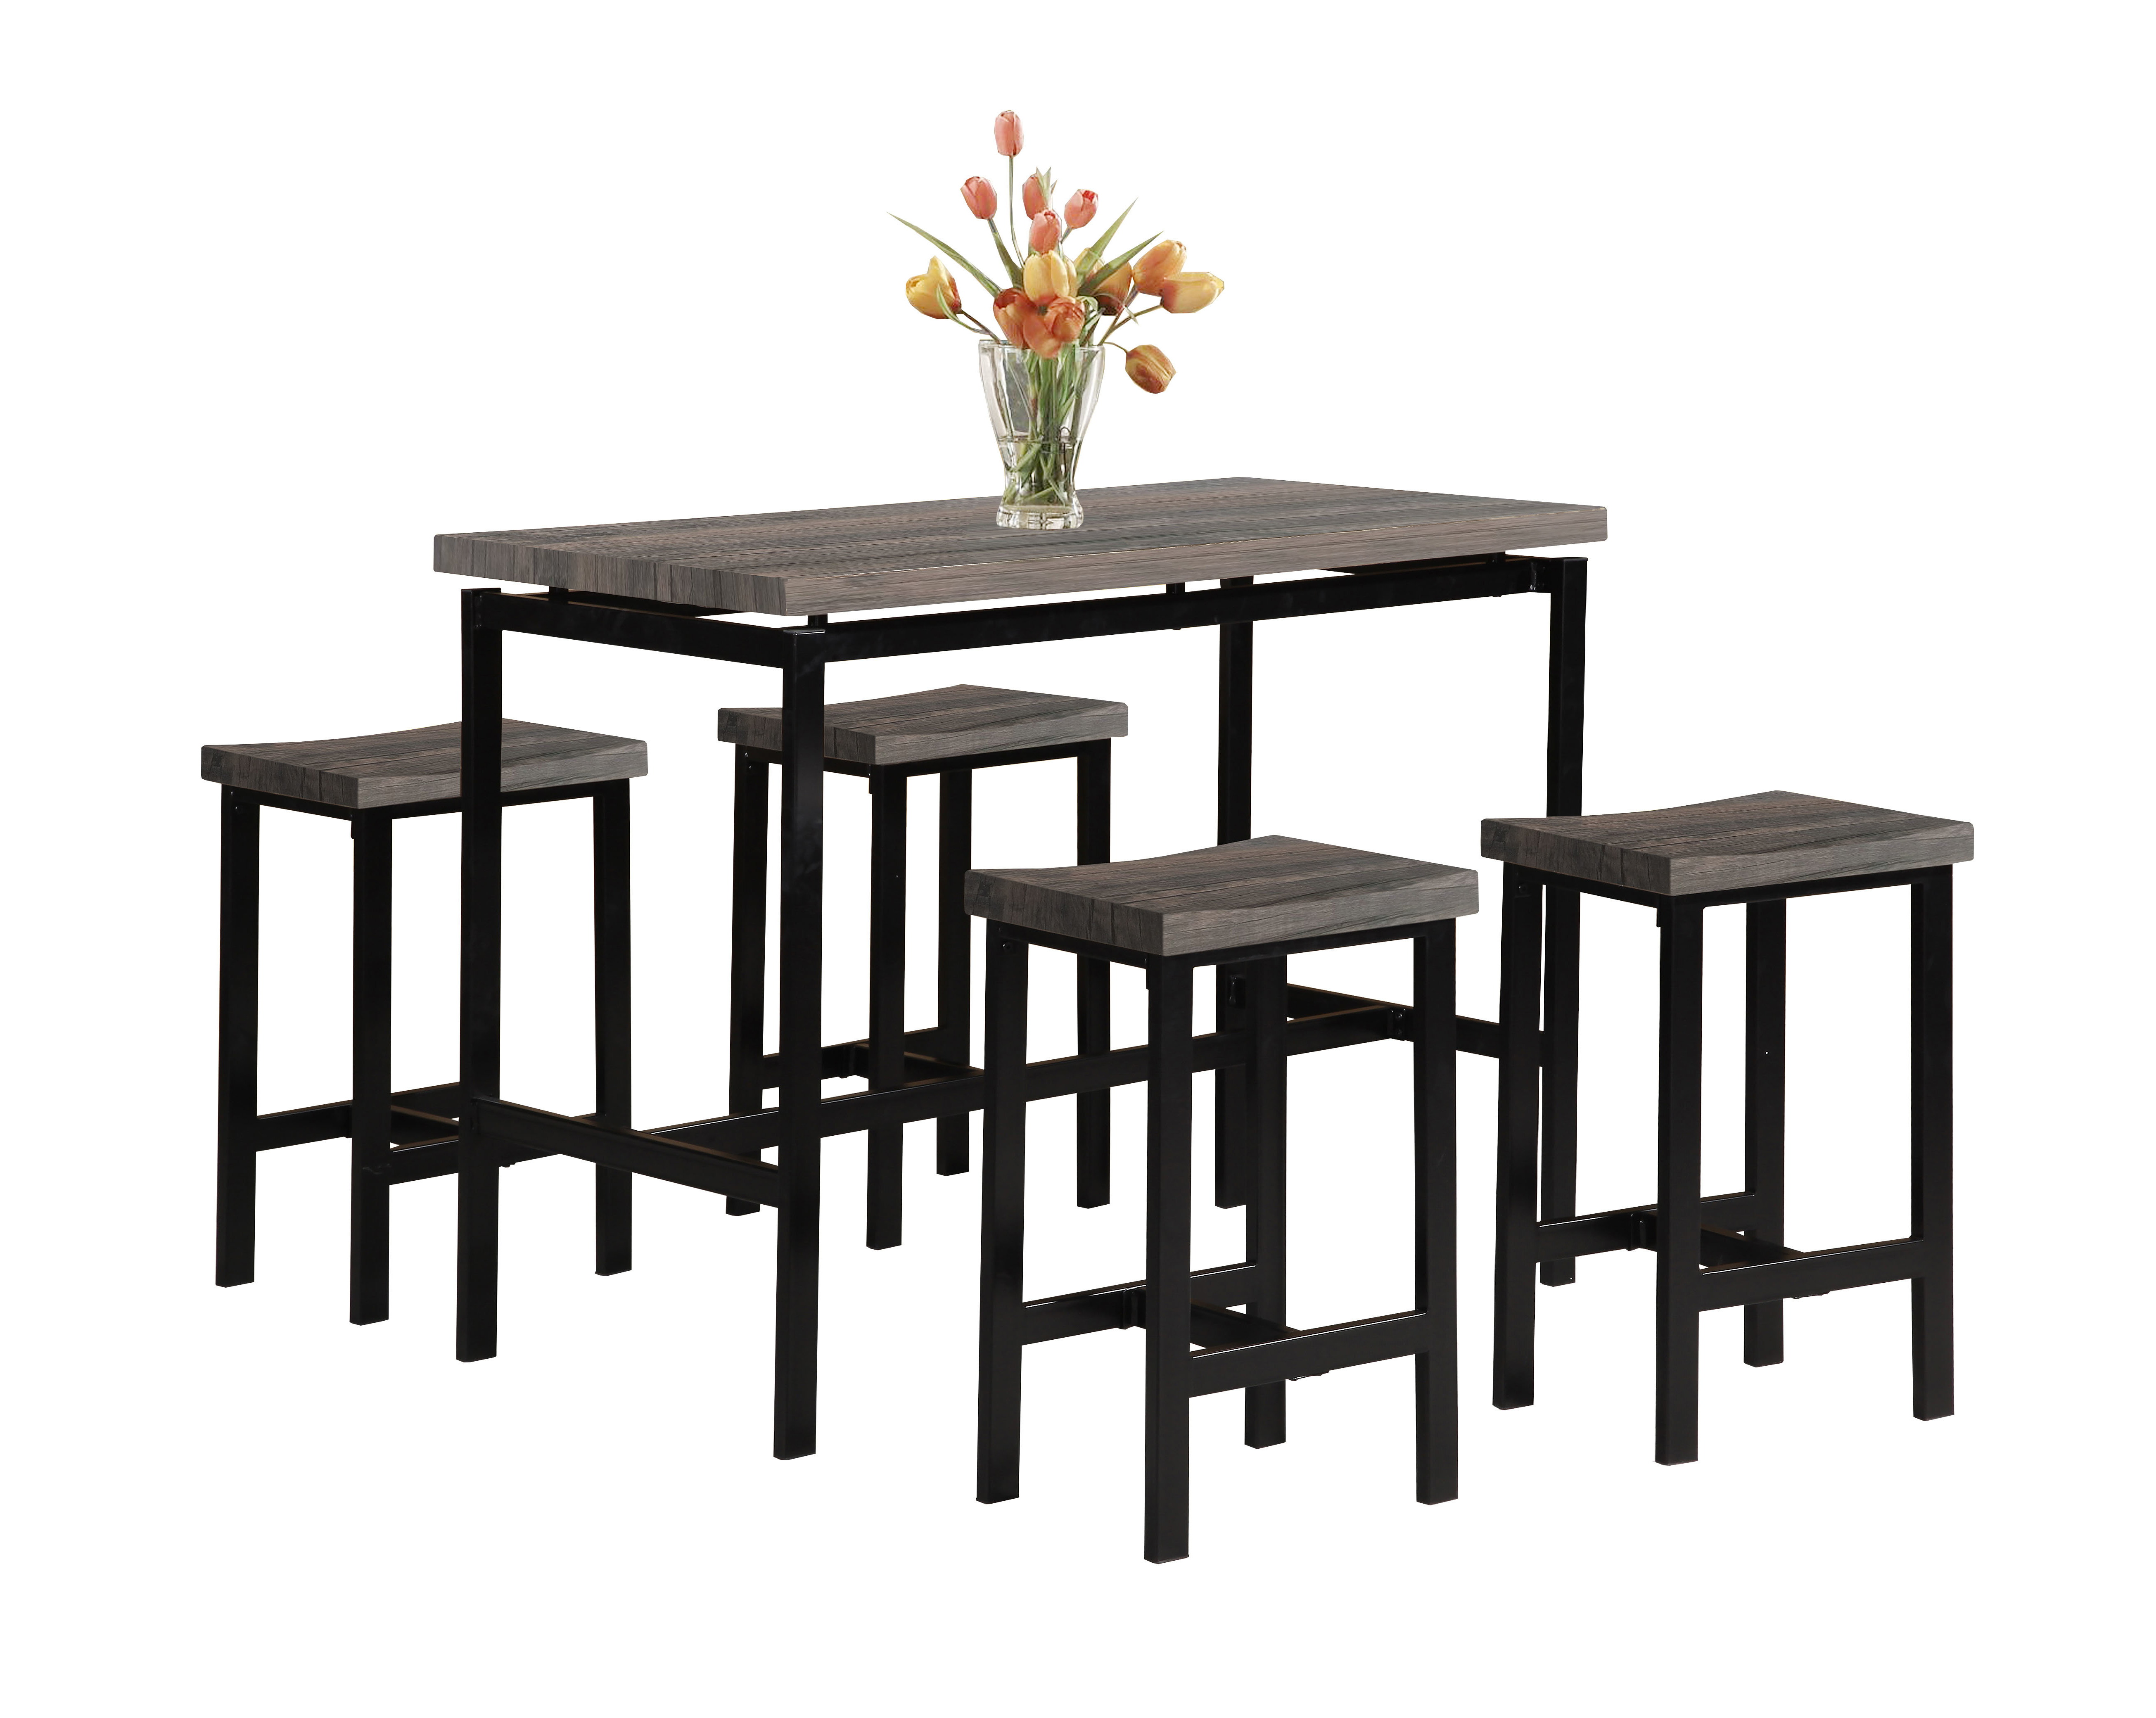 Denzel 5 Piece Counter Height Breakfast Nook Dining Sets Intended For Current Wrought Studio Denzel 5 Piece Counter Height Breakfast Nook Dining (Gallery 1 of 25)